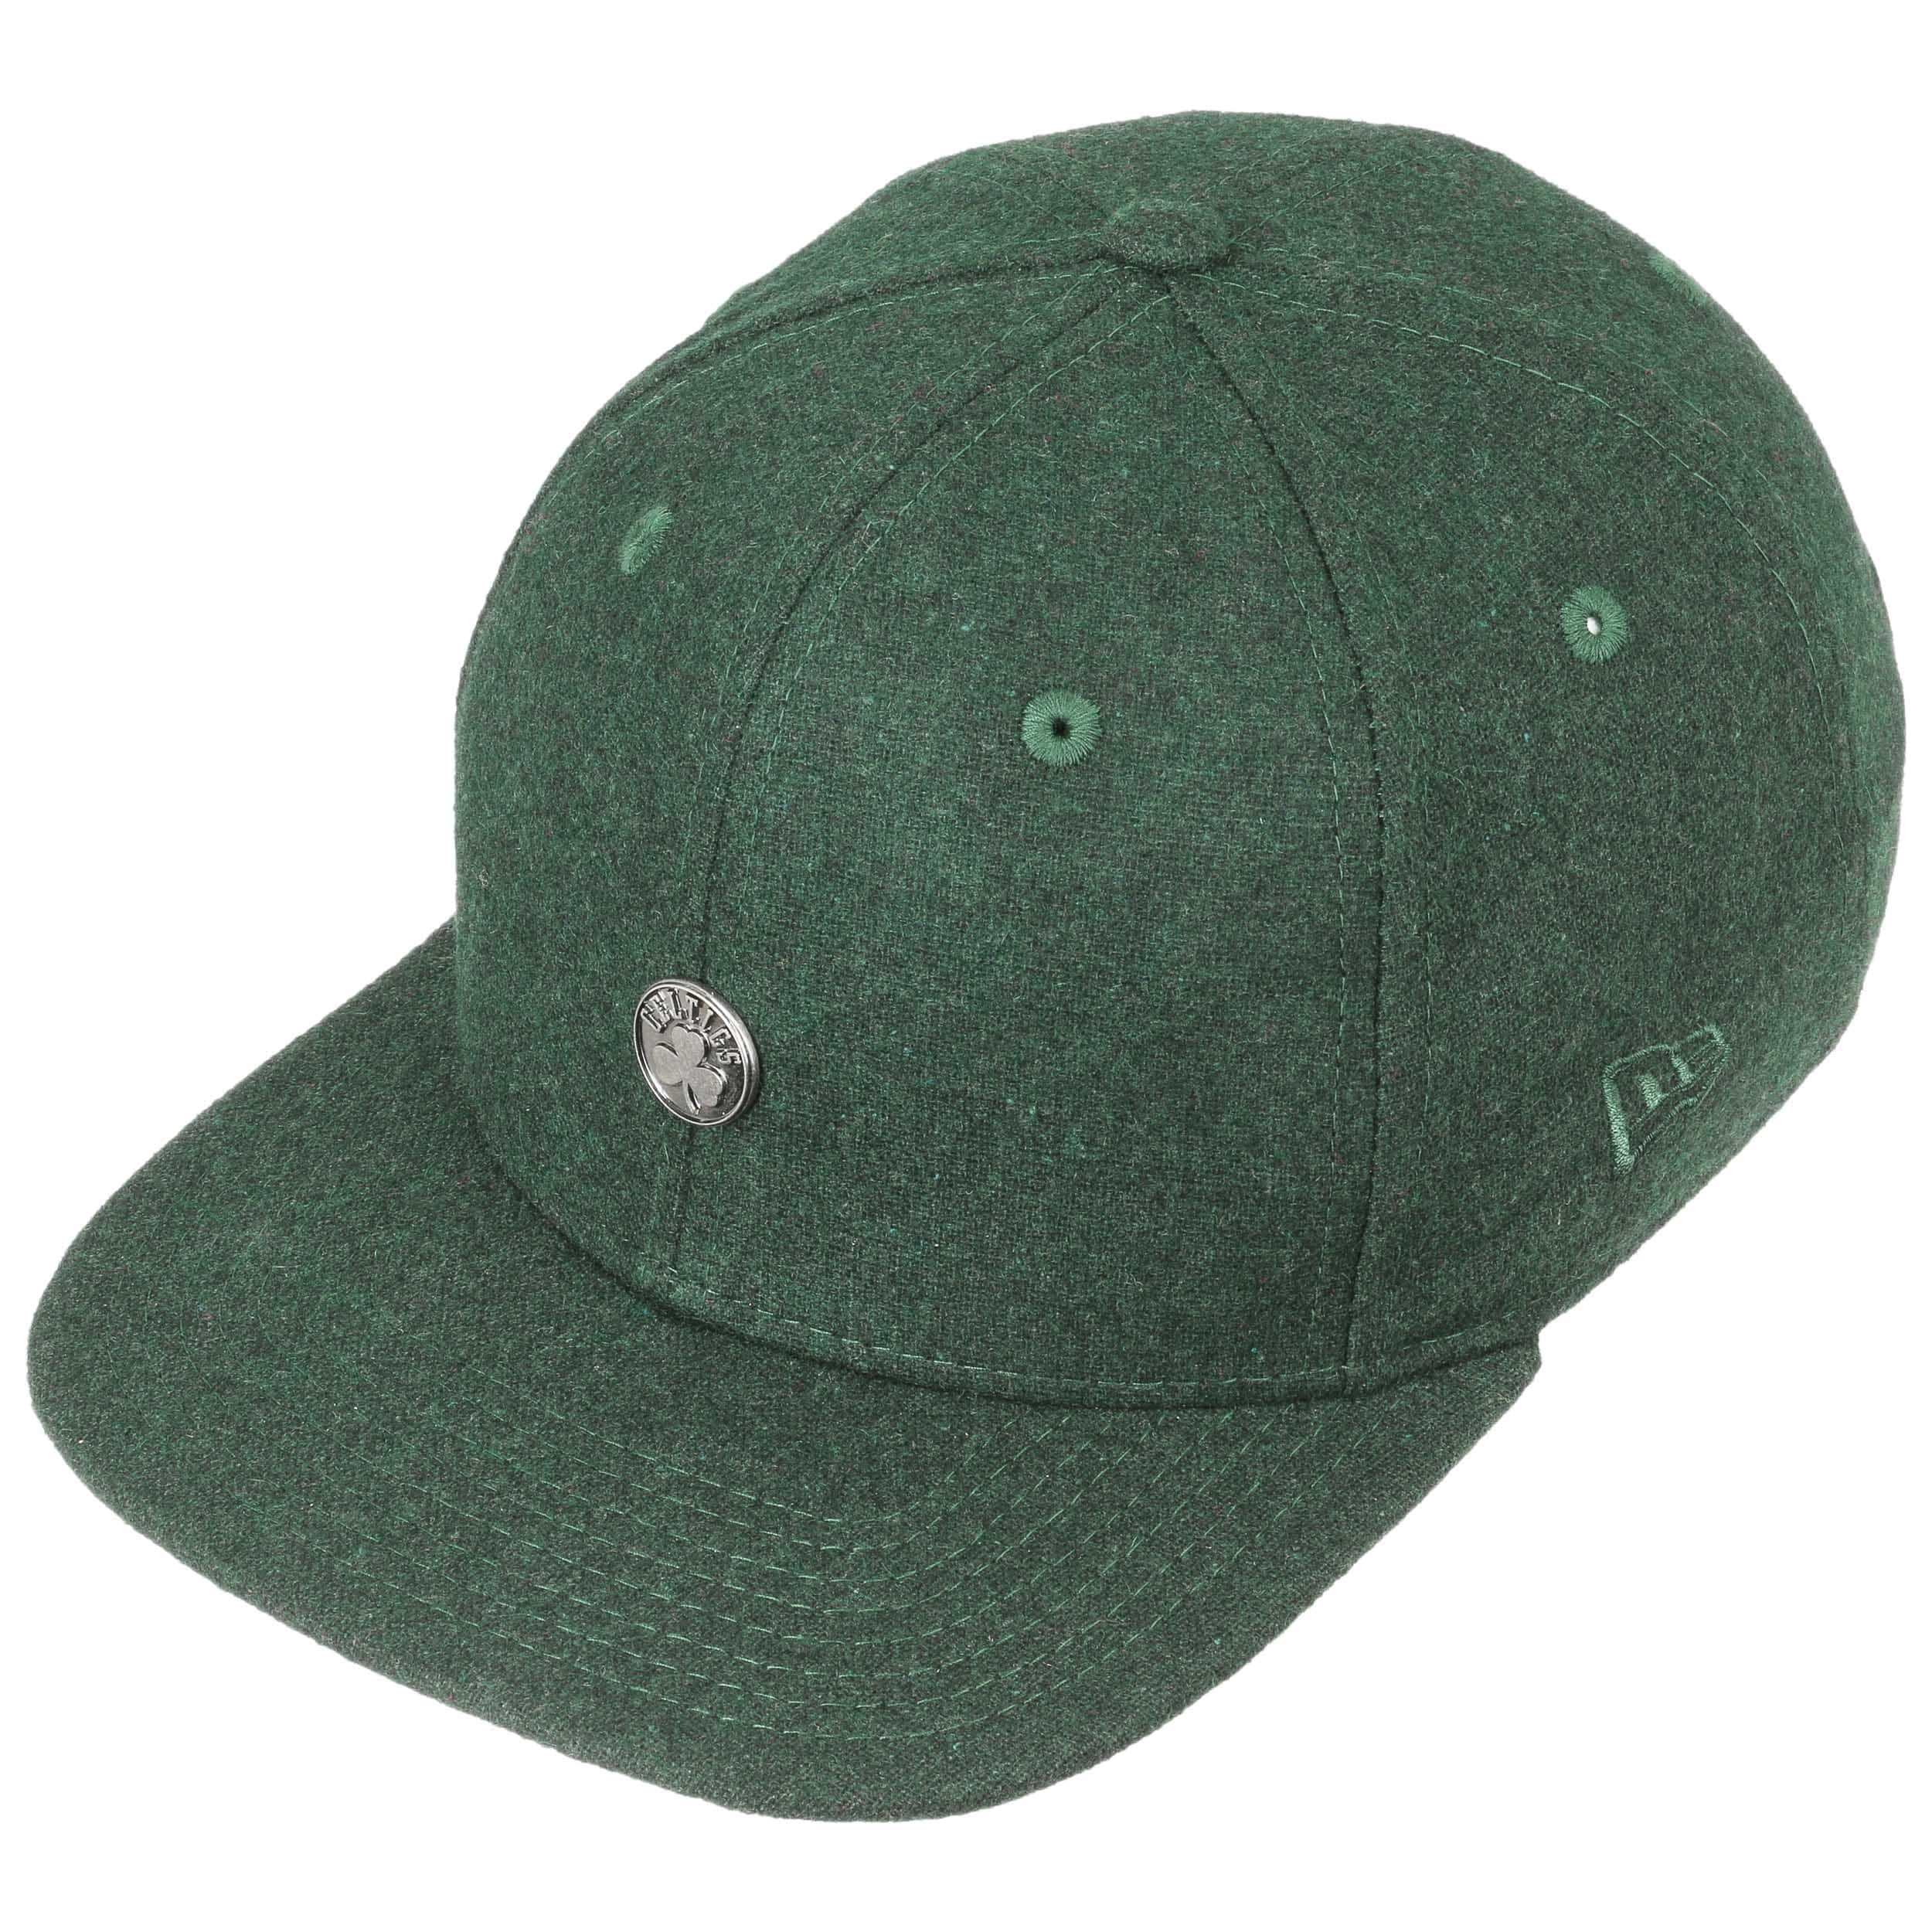 9Fifty Pin Celtics Cap by New Era - dark green 1 ... fc6f04989bb